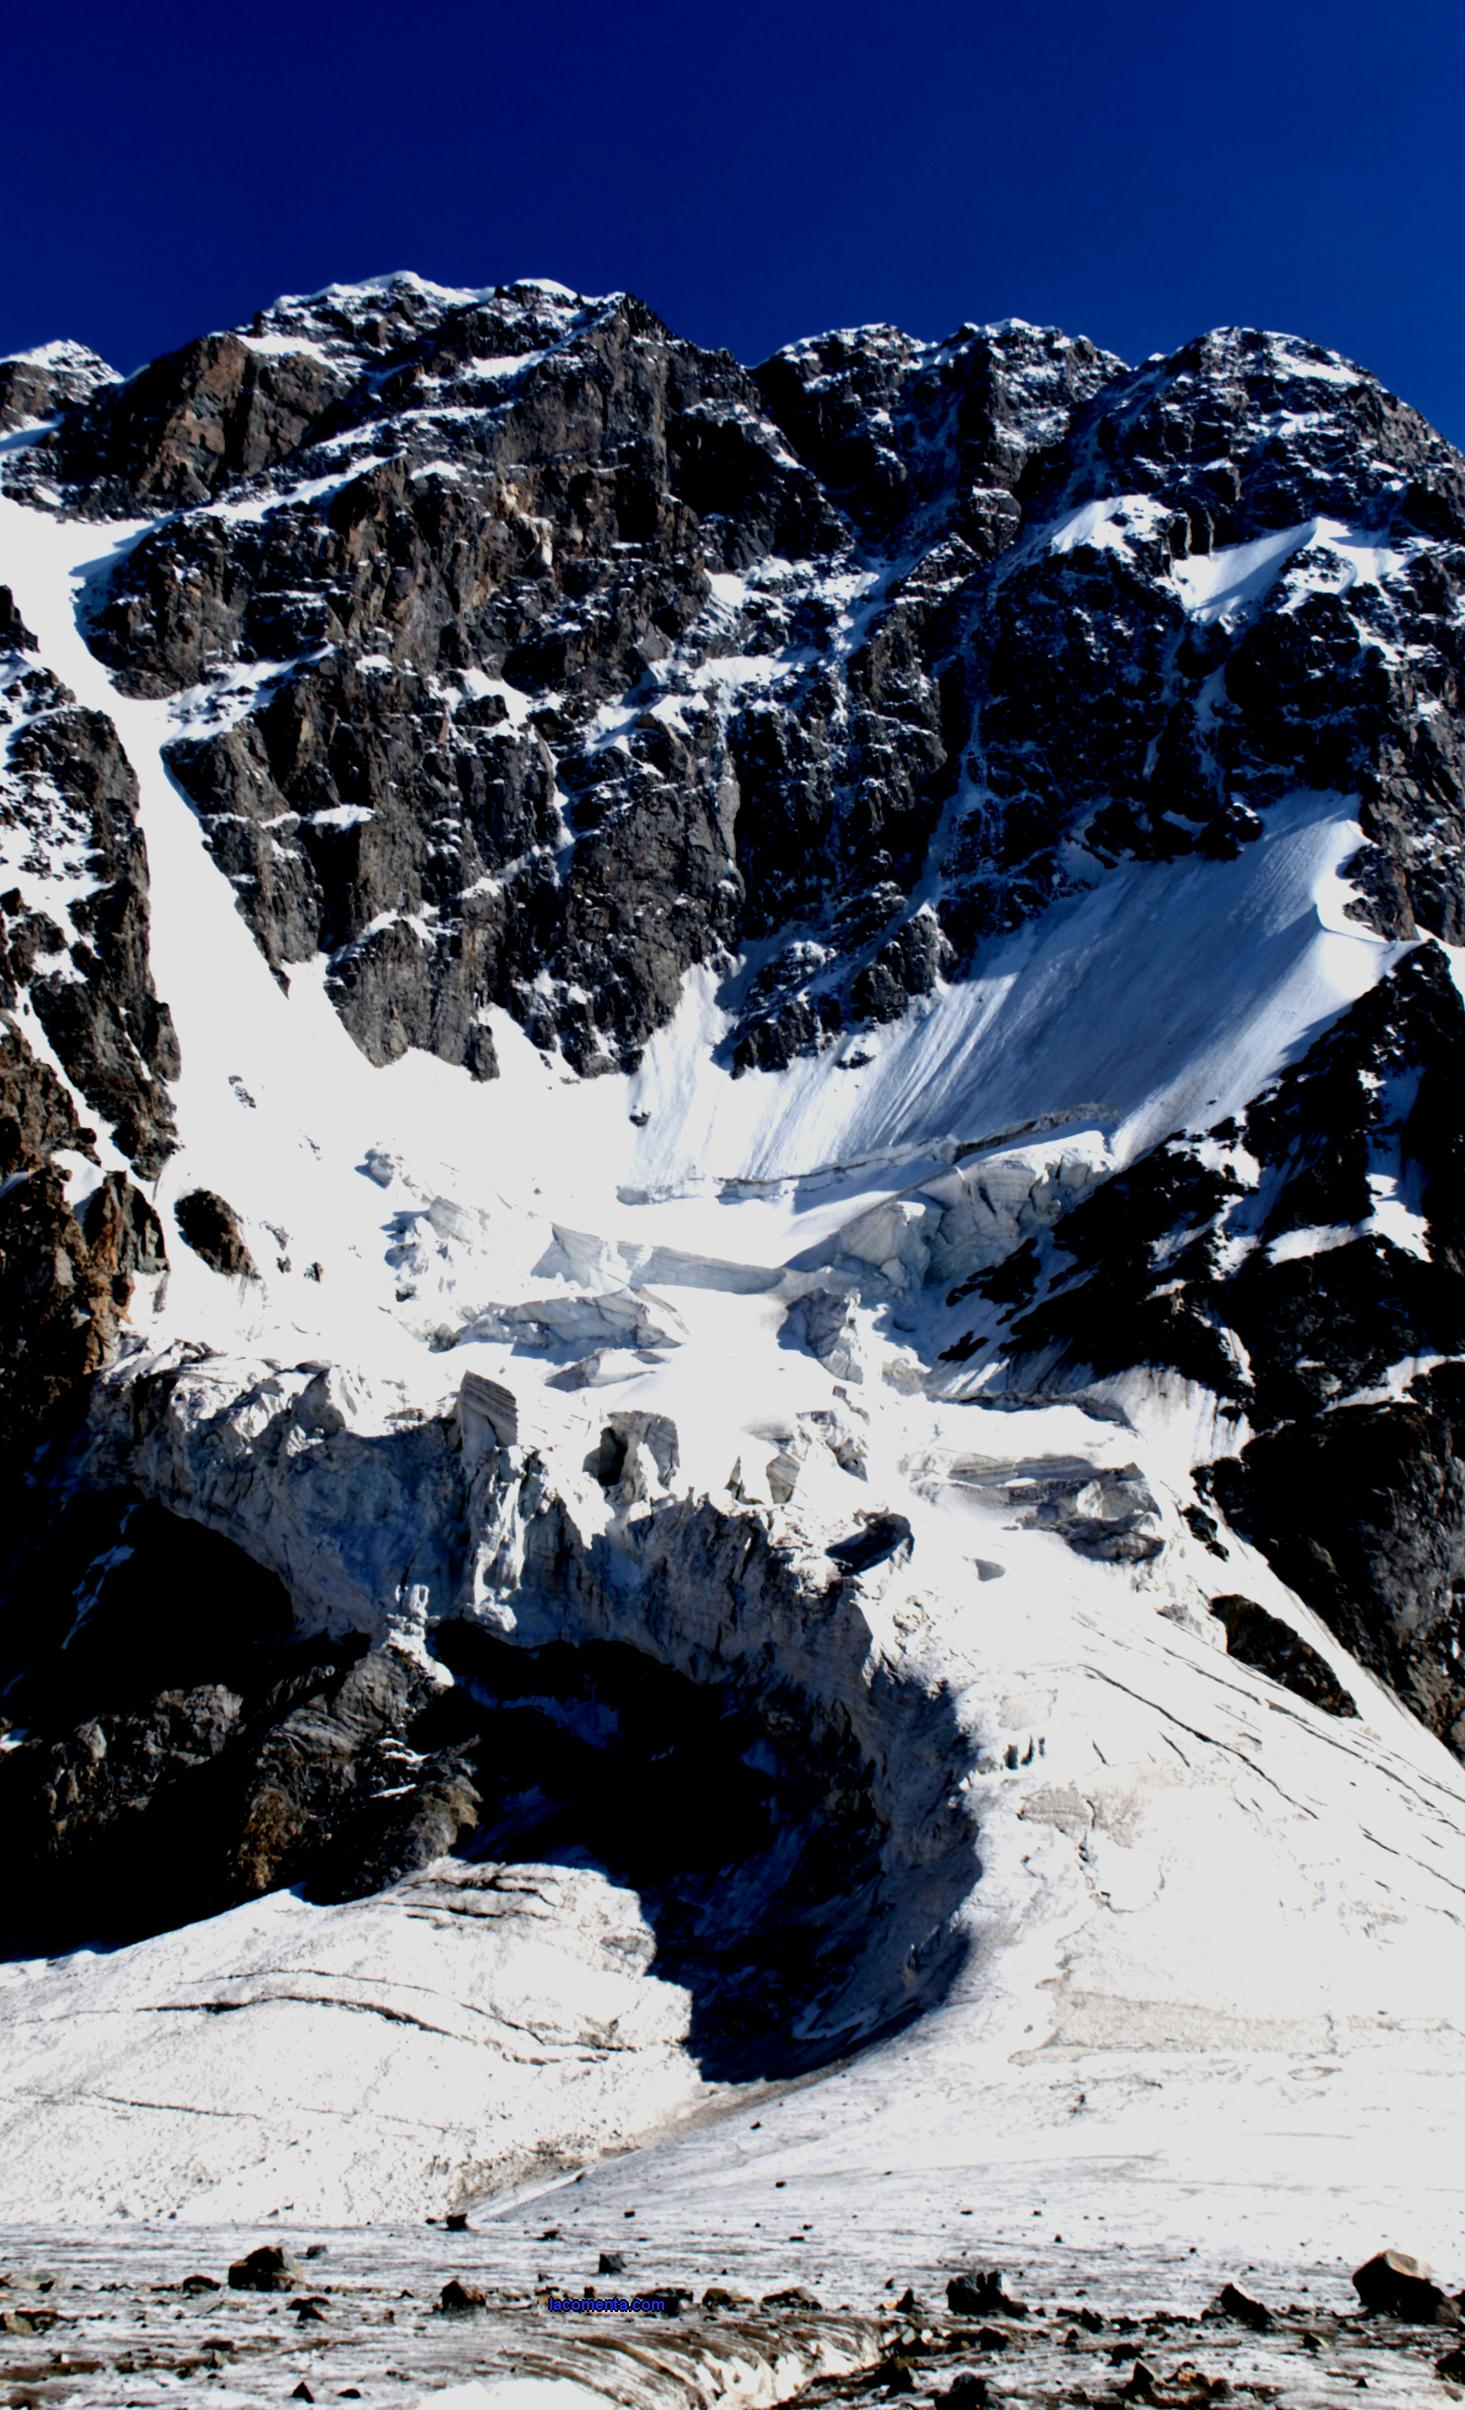 Mountaineering and mountaineering difference